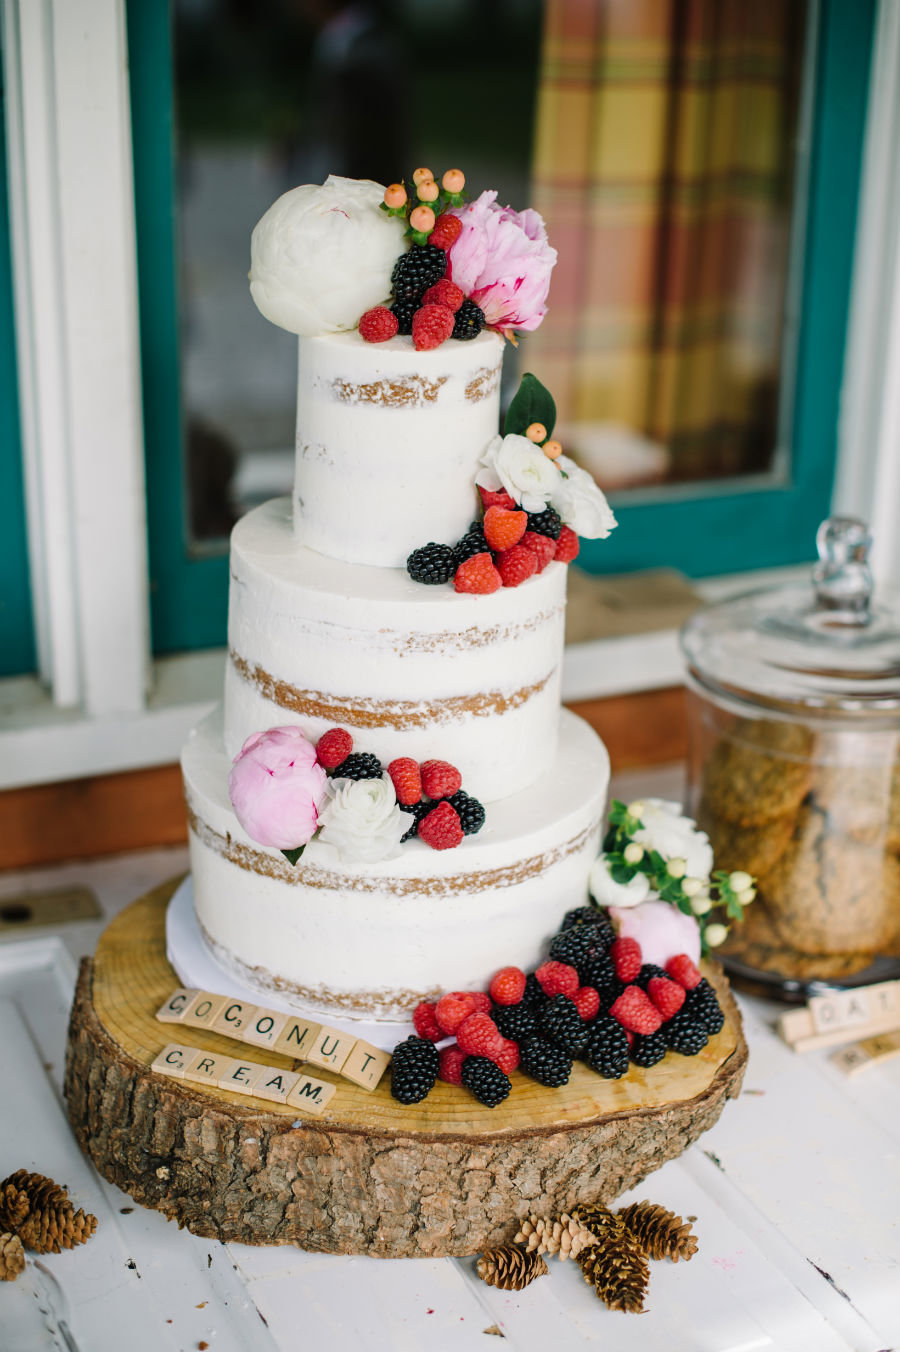 Whippt Wedding Cake - Credit Shannon Valente wedding planner and Corrina Walker Photography